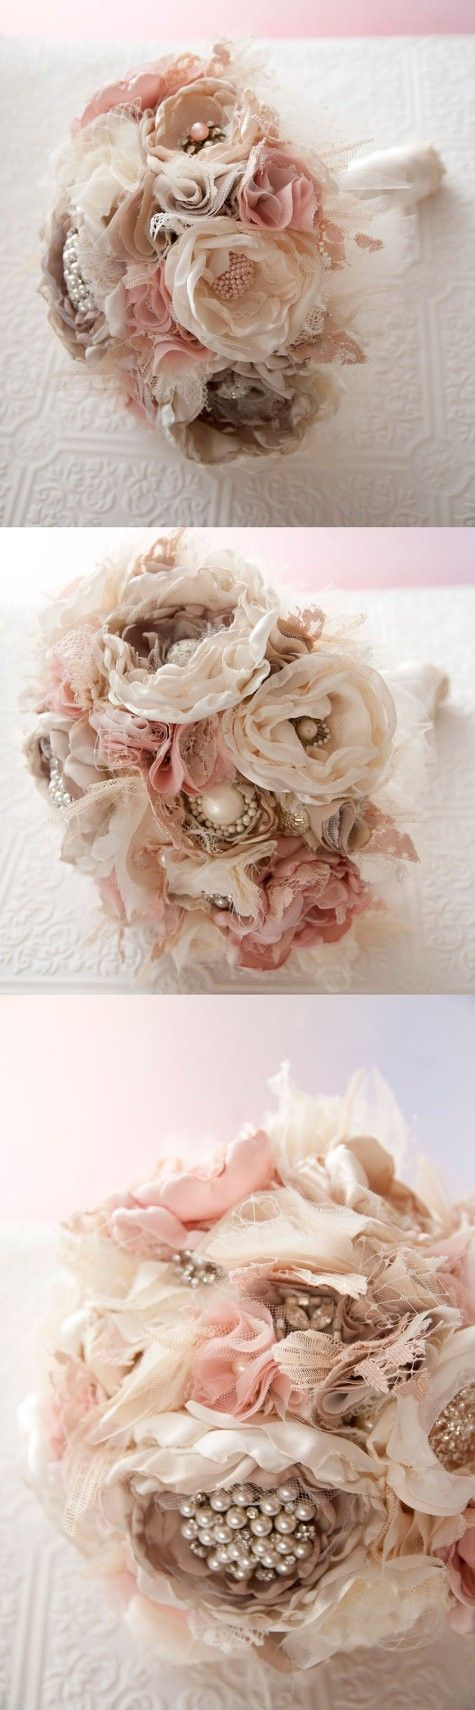 fabric flower bouquet.                                                                                                                                                                                 More